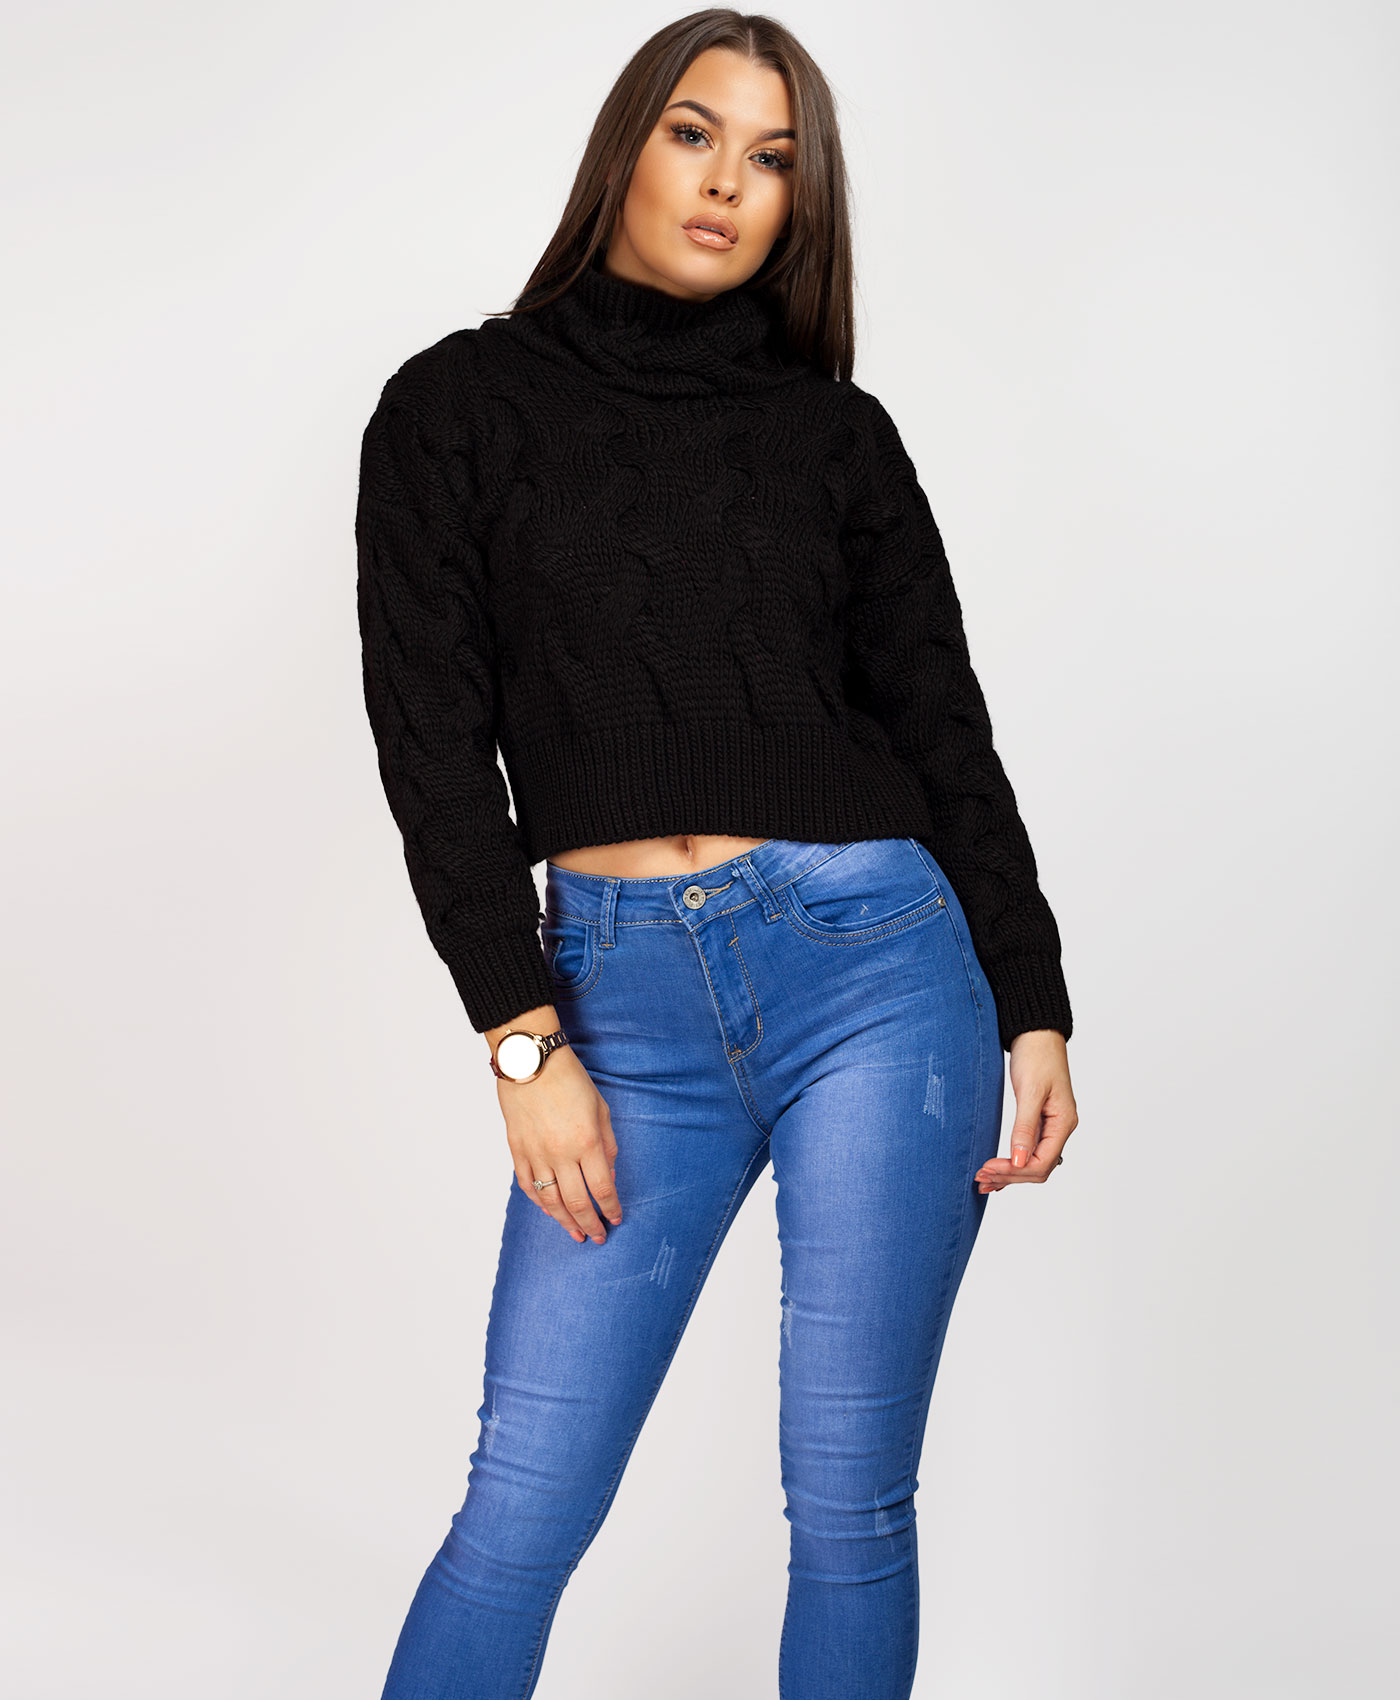 Womens-Ladies-Cable-Knitted-High-Neck-Cropped-Top-Pullover-Sweater-Chunky-Jumper thumbnail 22